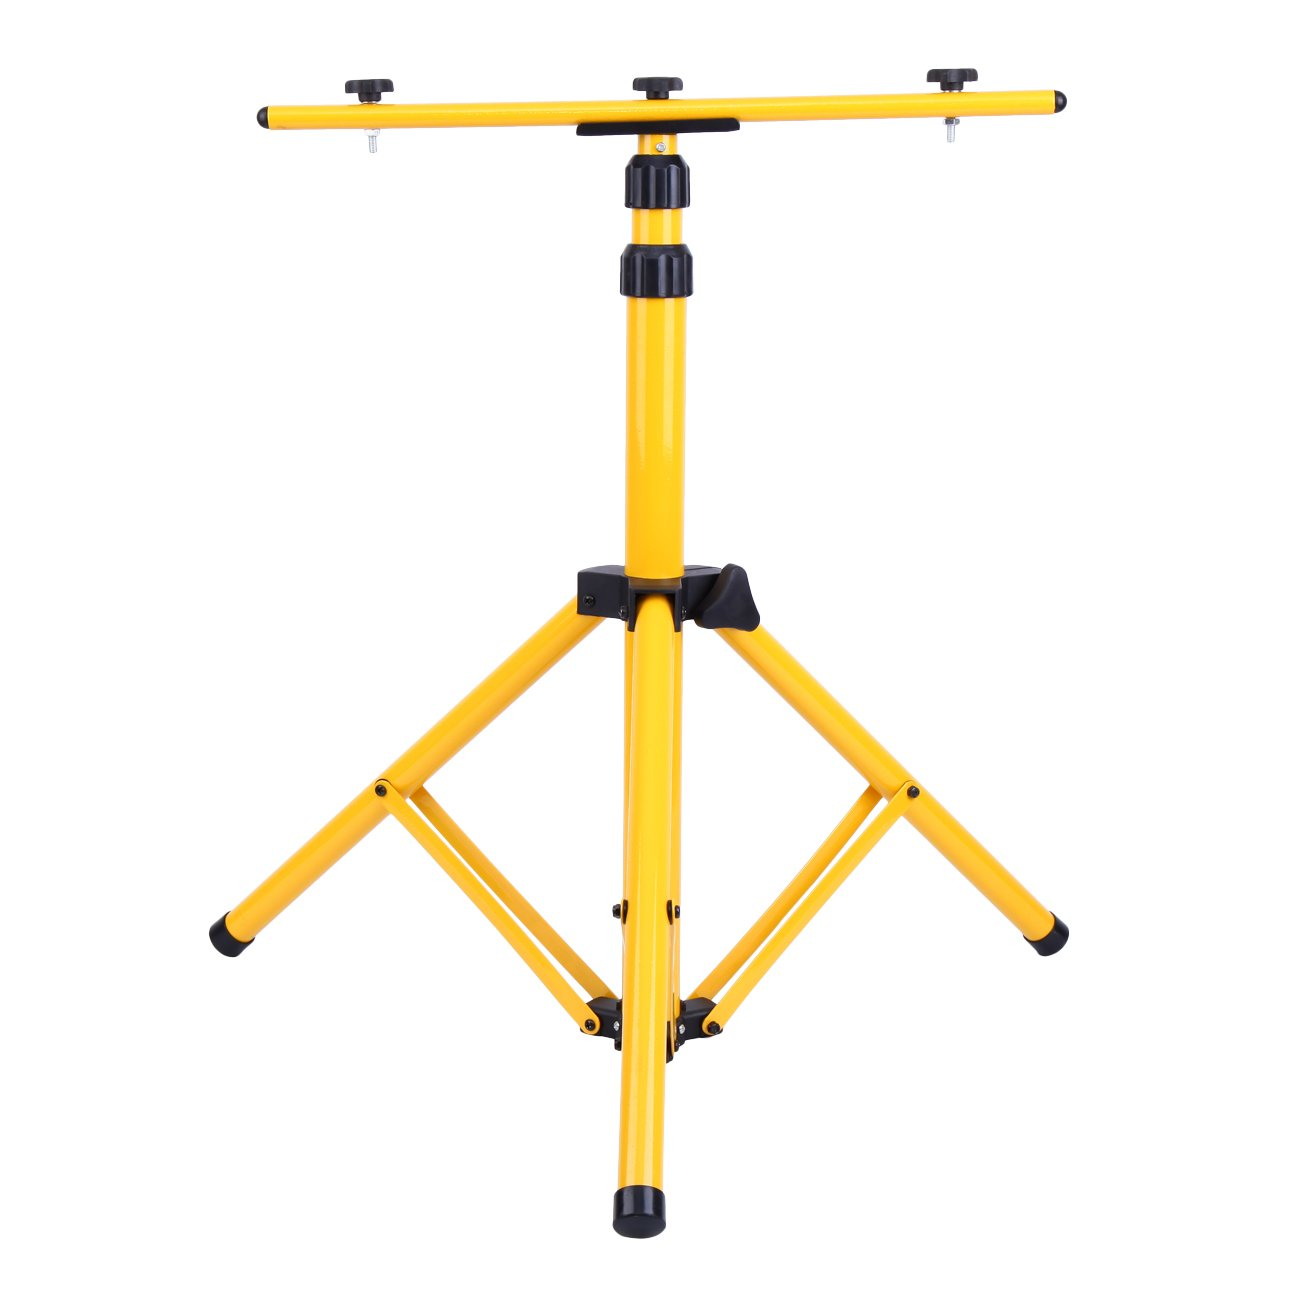 PanelTech Adjustable Tripod Stand for LED Flood Light Telescoping Steel Floodlight Stand with Heavy Duty Construction Portable Tripod Stand for Home and Job Site Lighting